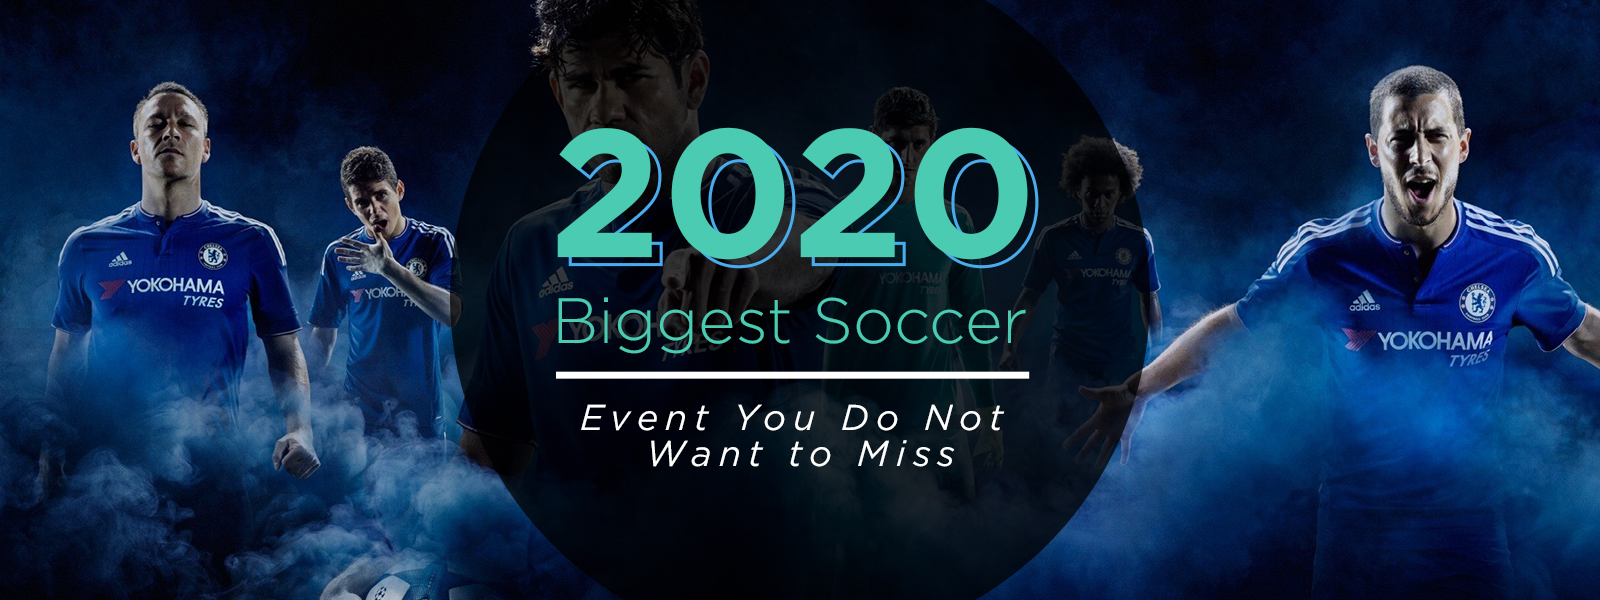 2020 Biggest Soccer Events You Do Not Want to Miss